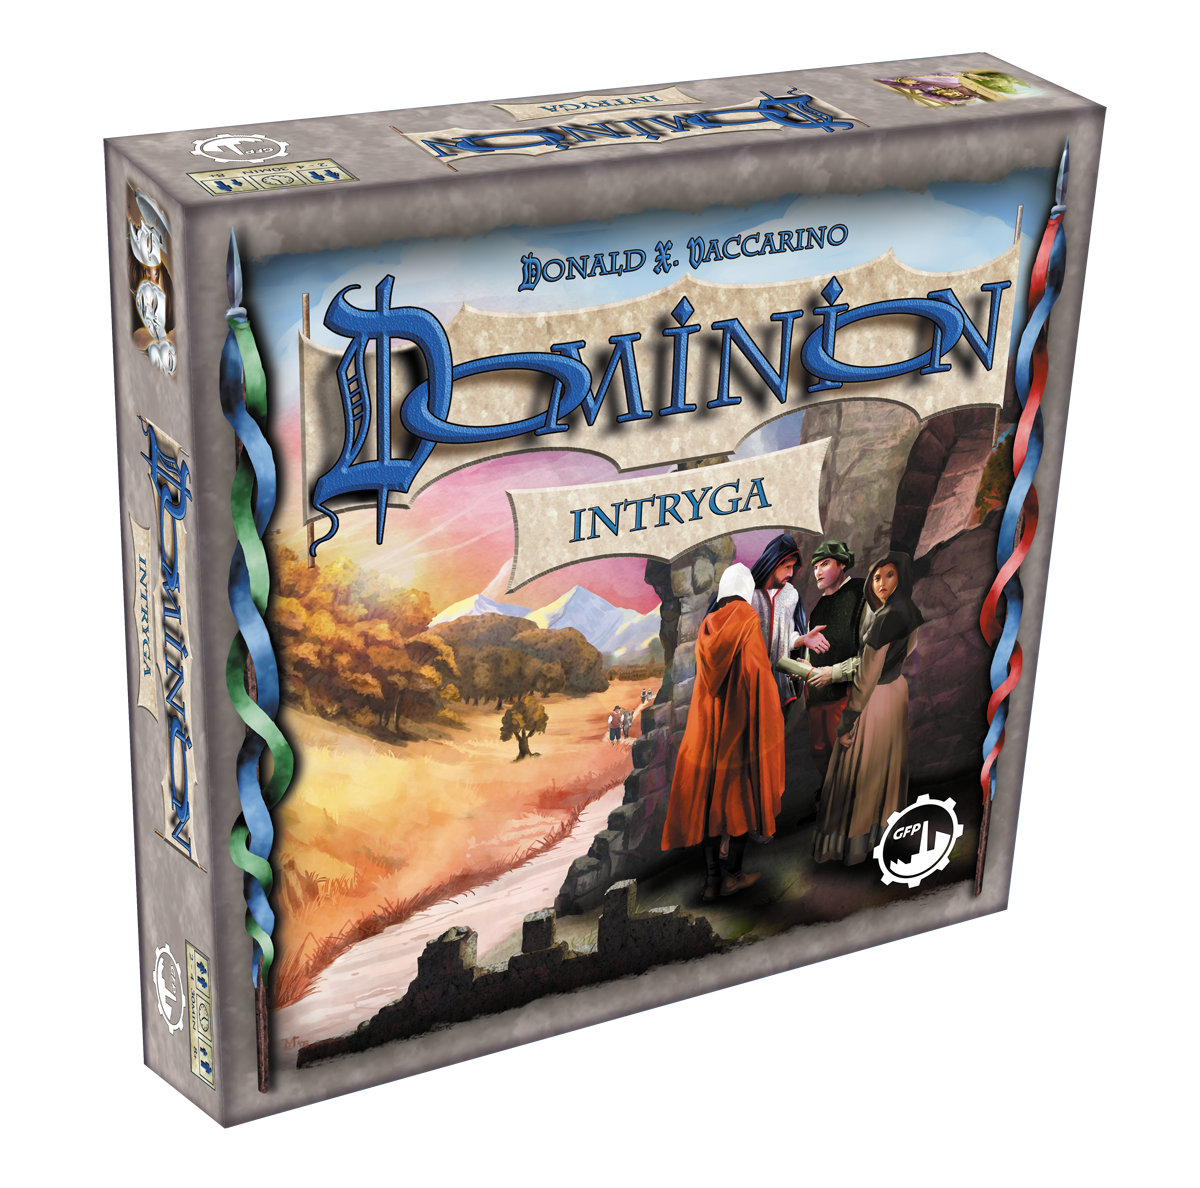 Dominion-intryga-Box-3D-sma